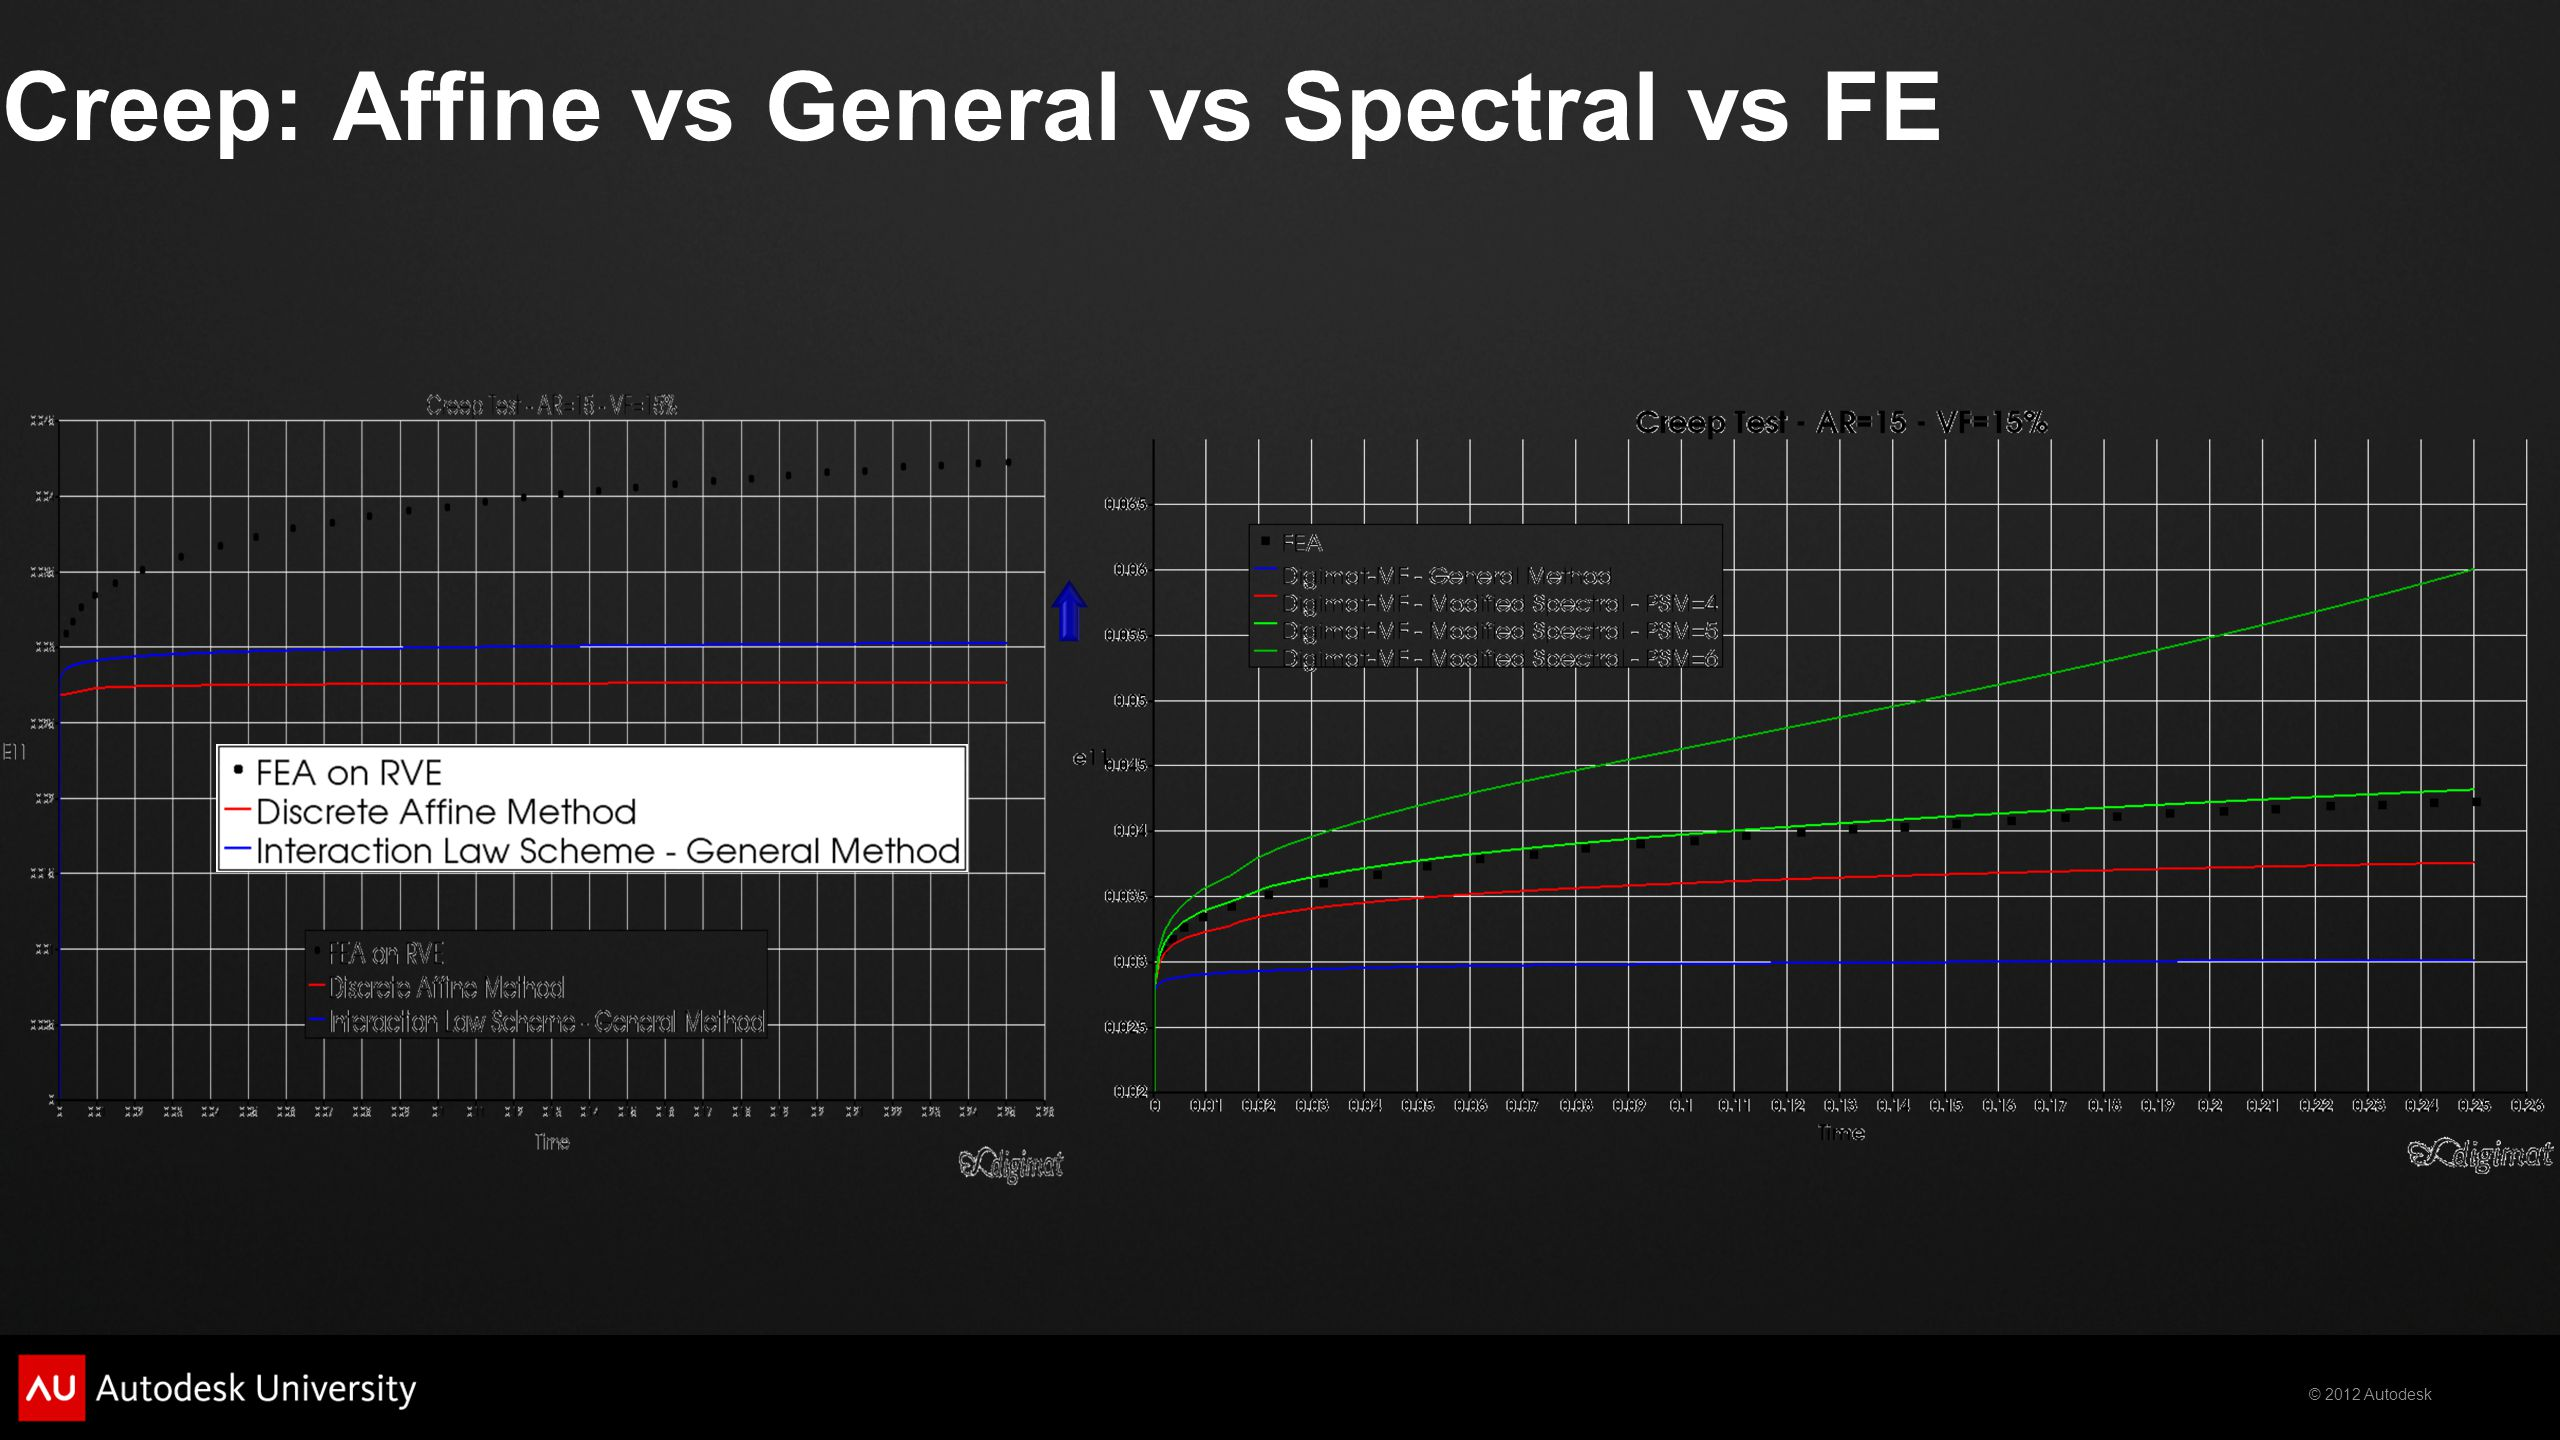 Creep: Affine vs General vs Spectral vs FE